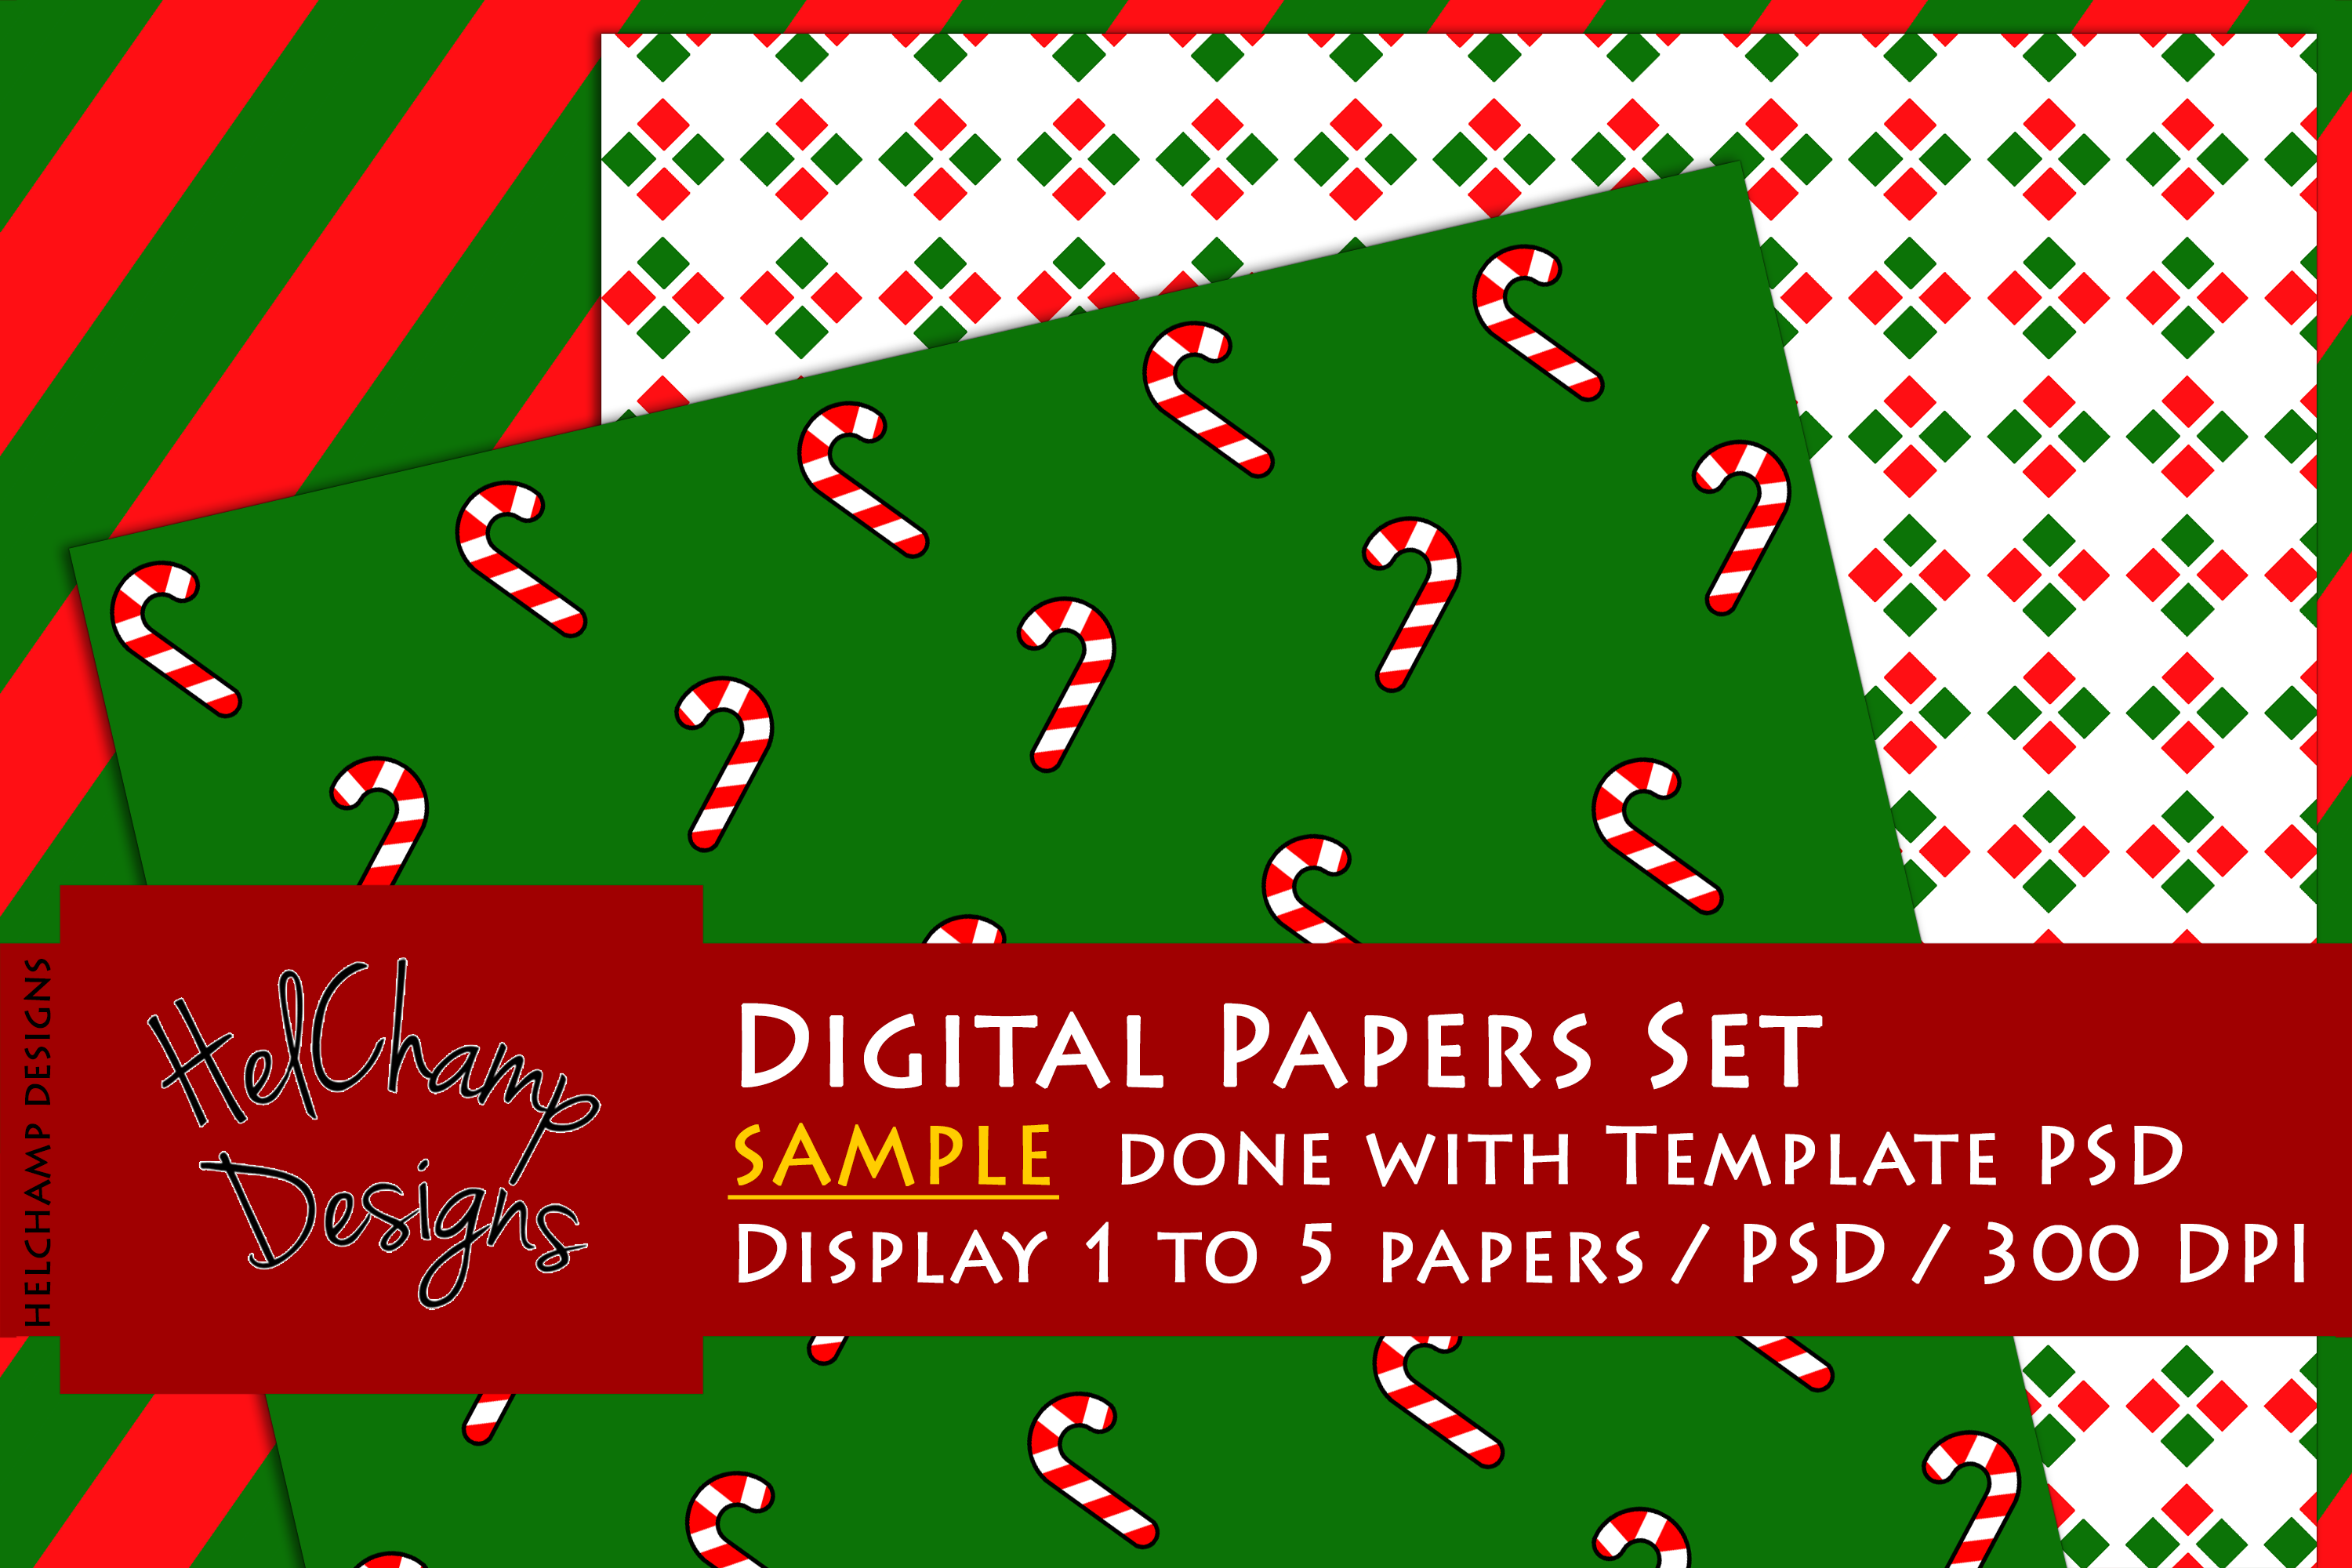 1 to 5 Panels Mockup for Digital Papers - M02 example image 5